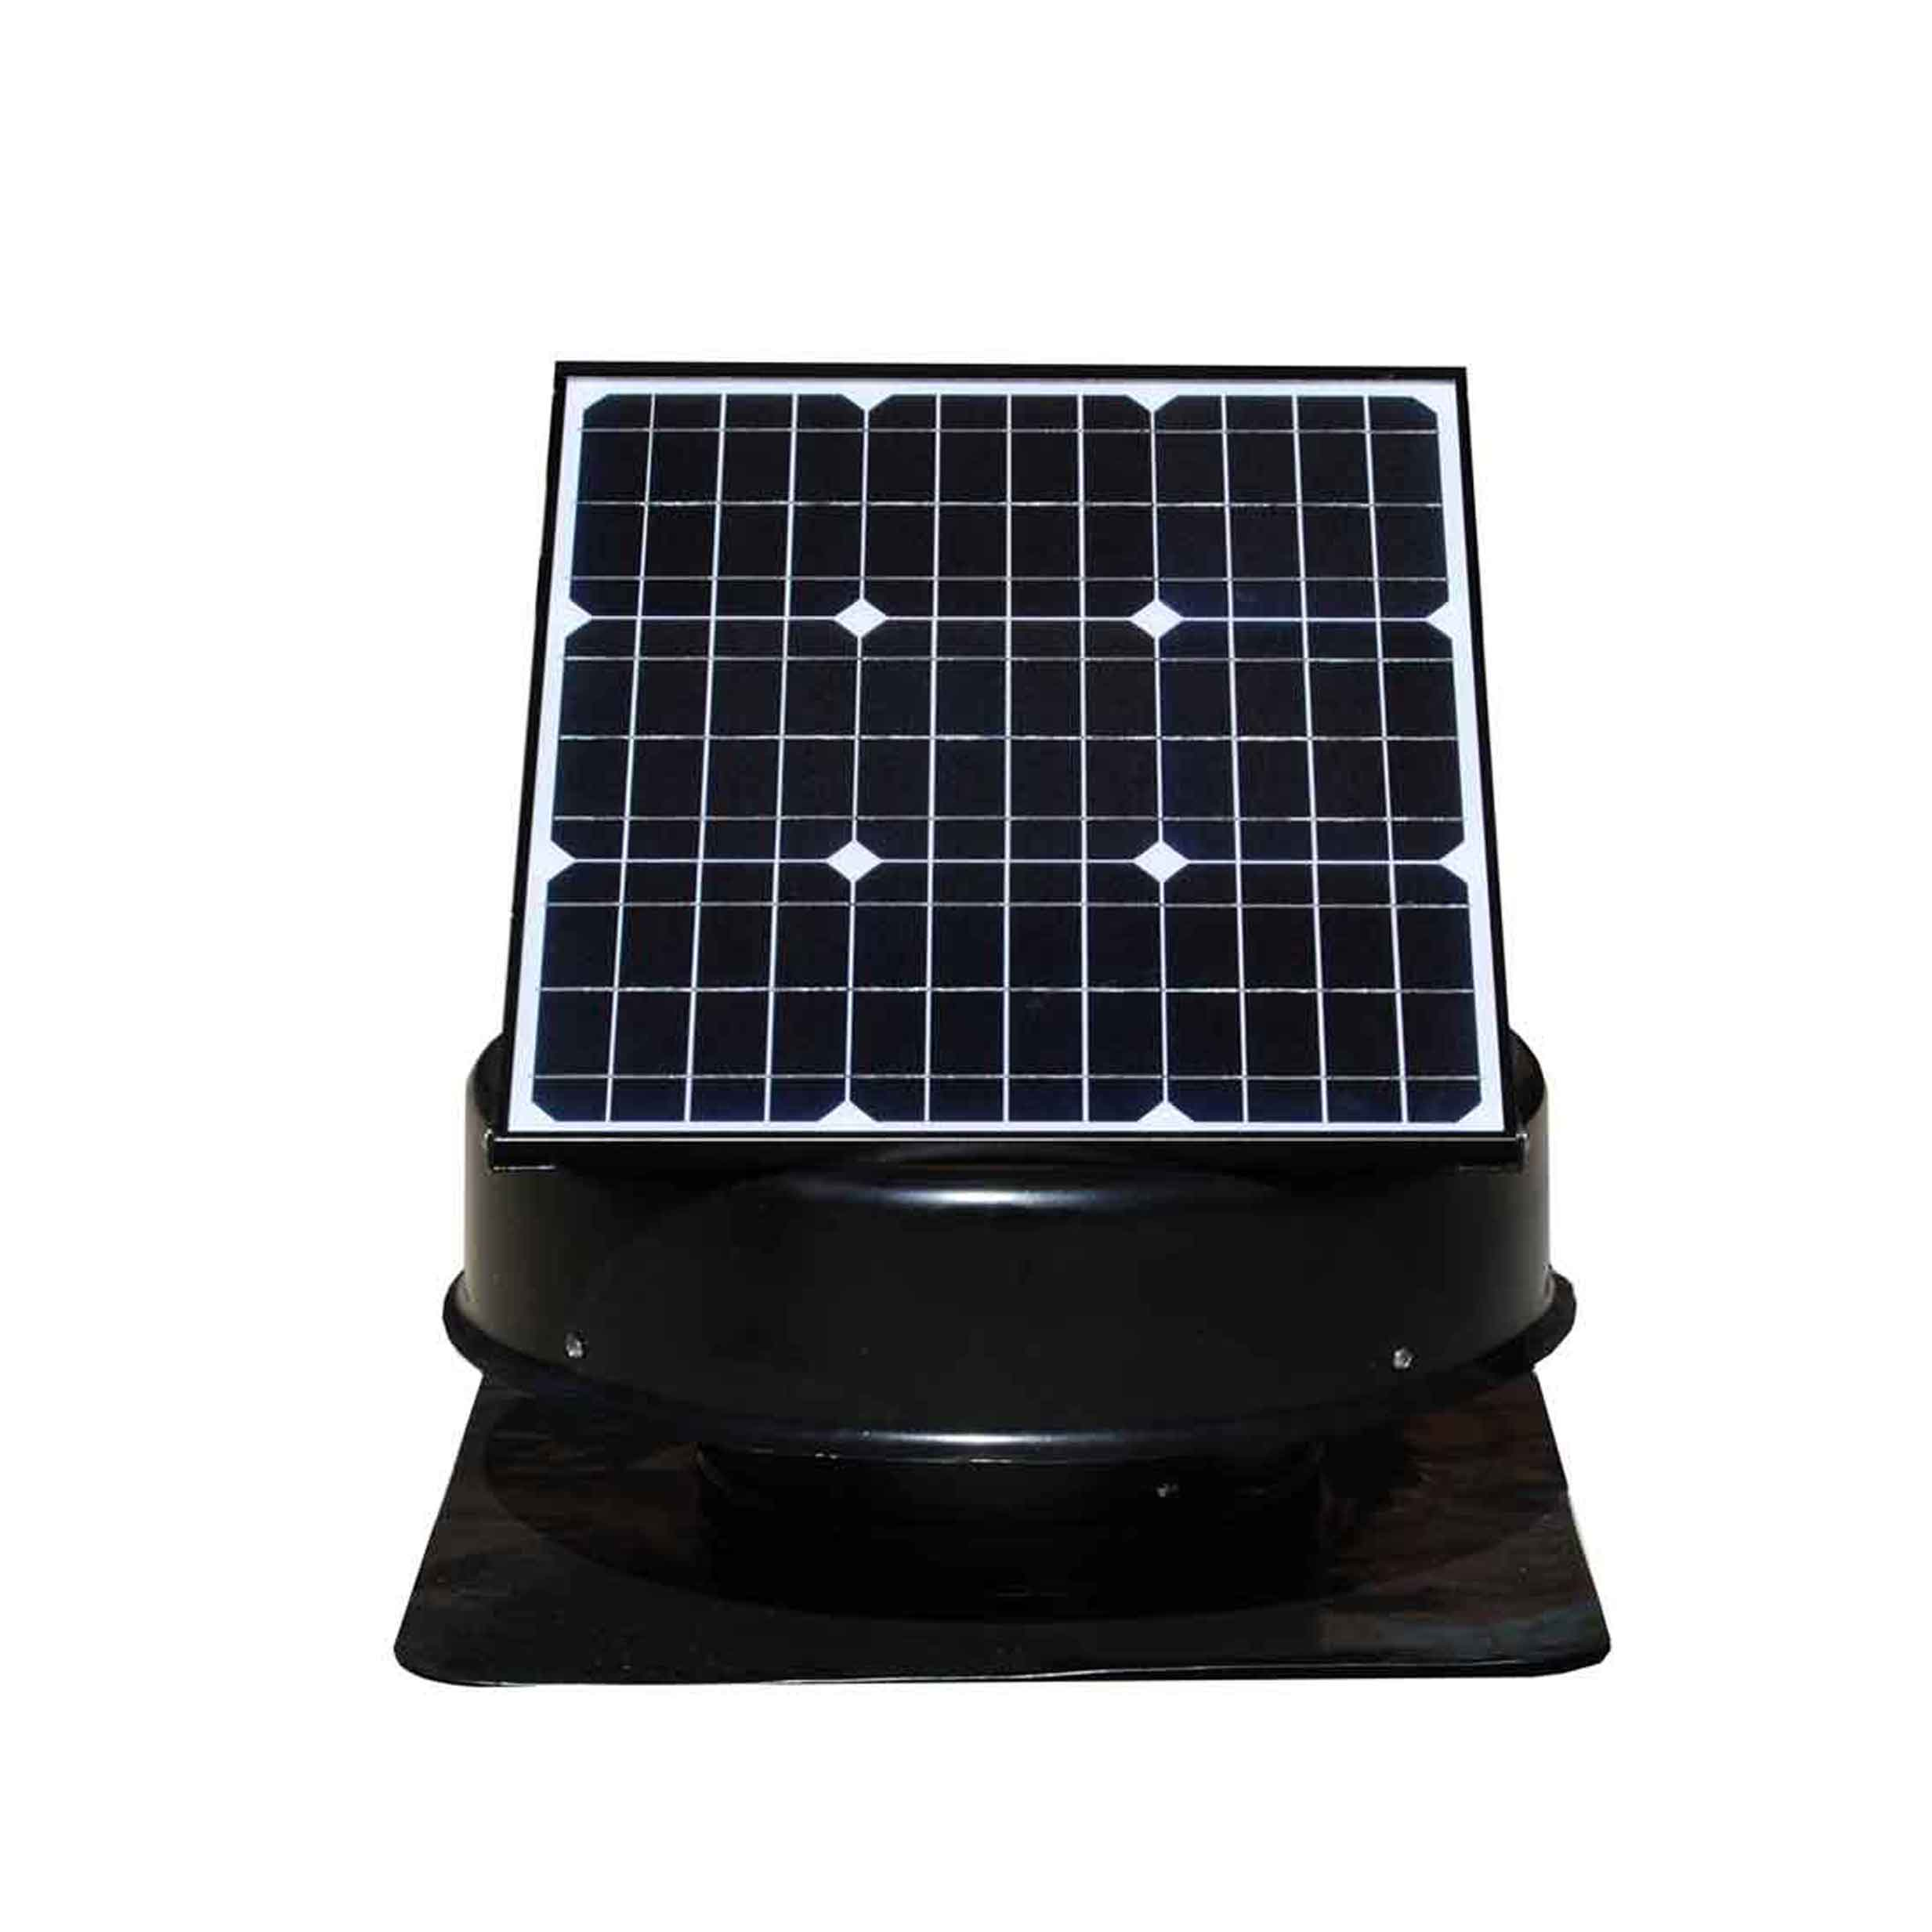 SolarKing Exhaust Fan